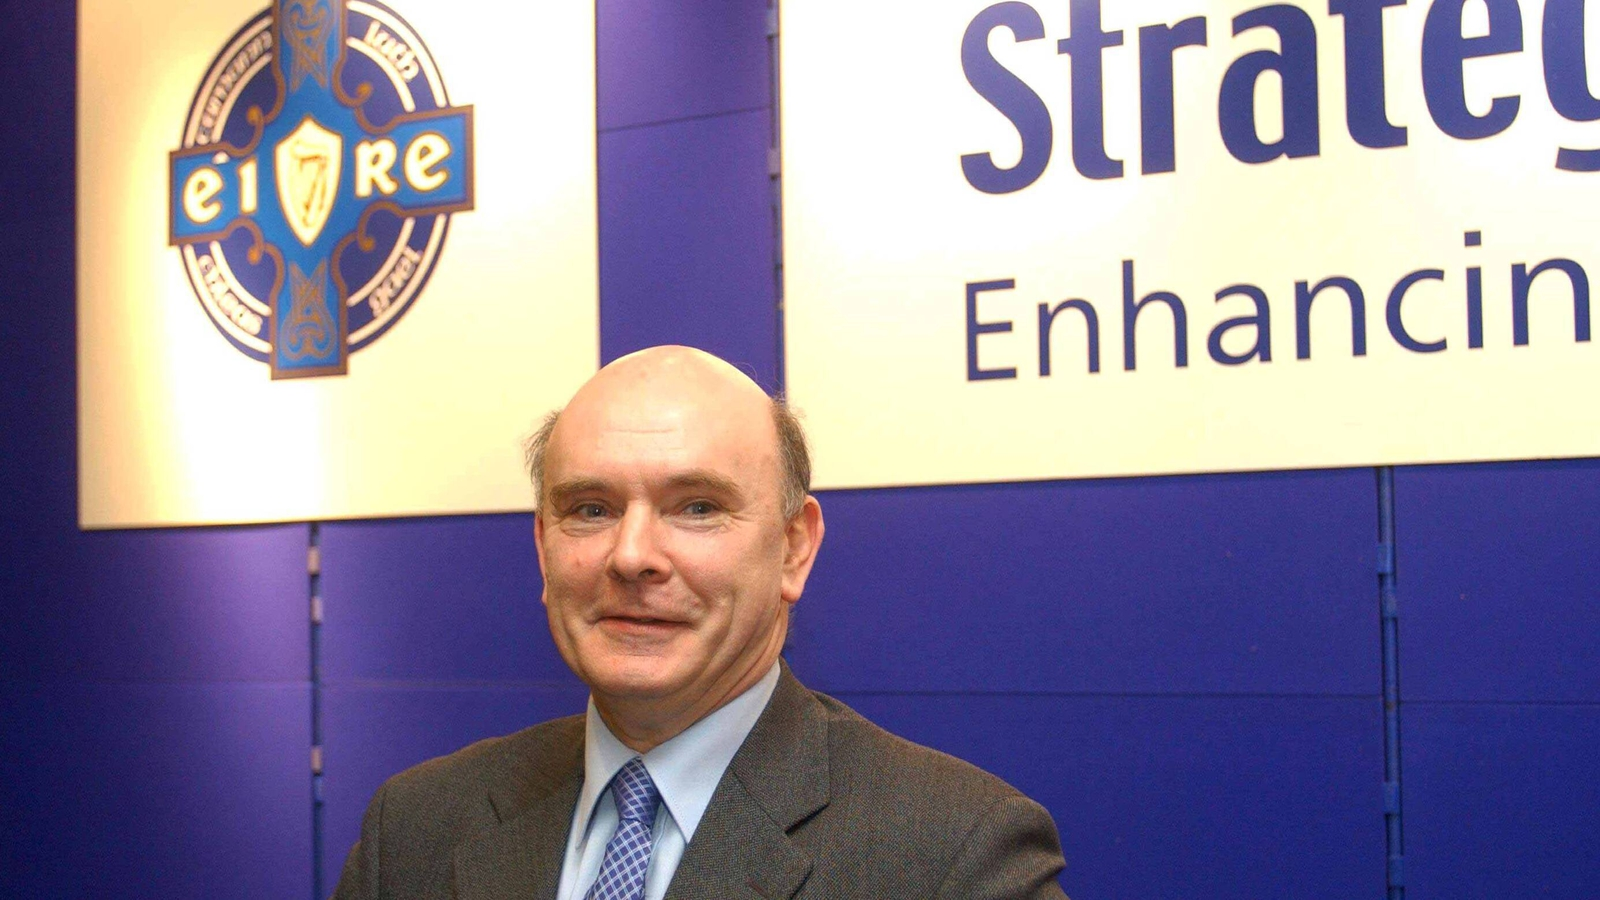 Image - Peter Quinn was chairman of the strategic review committee